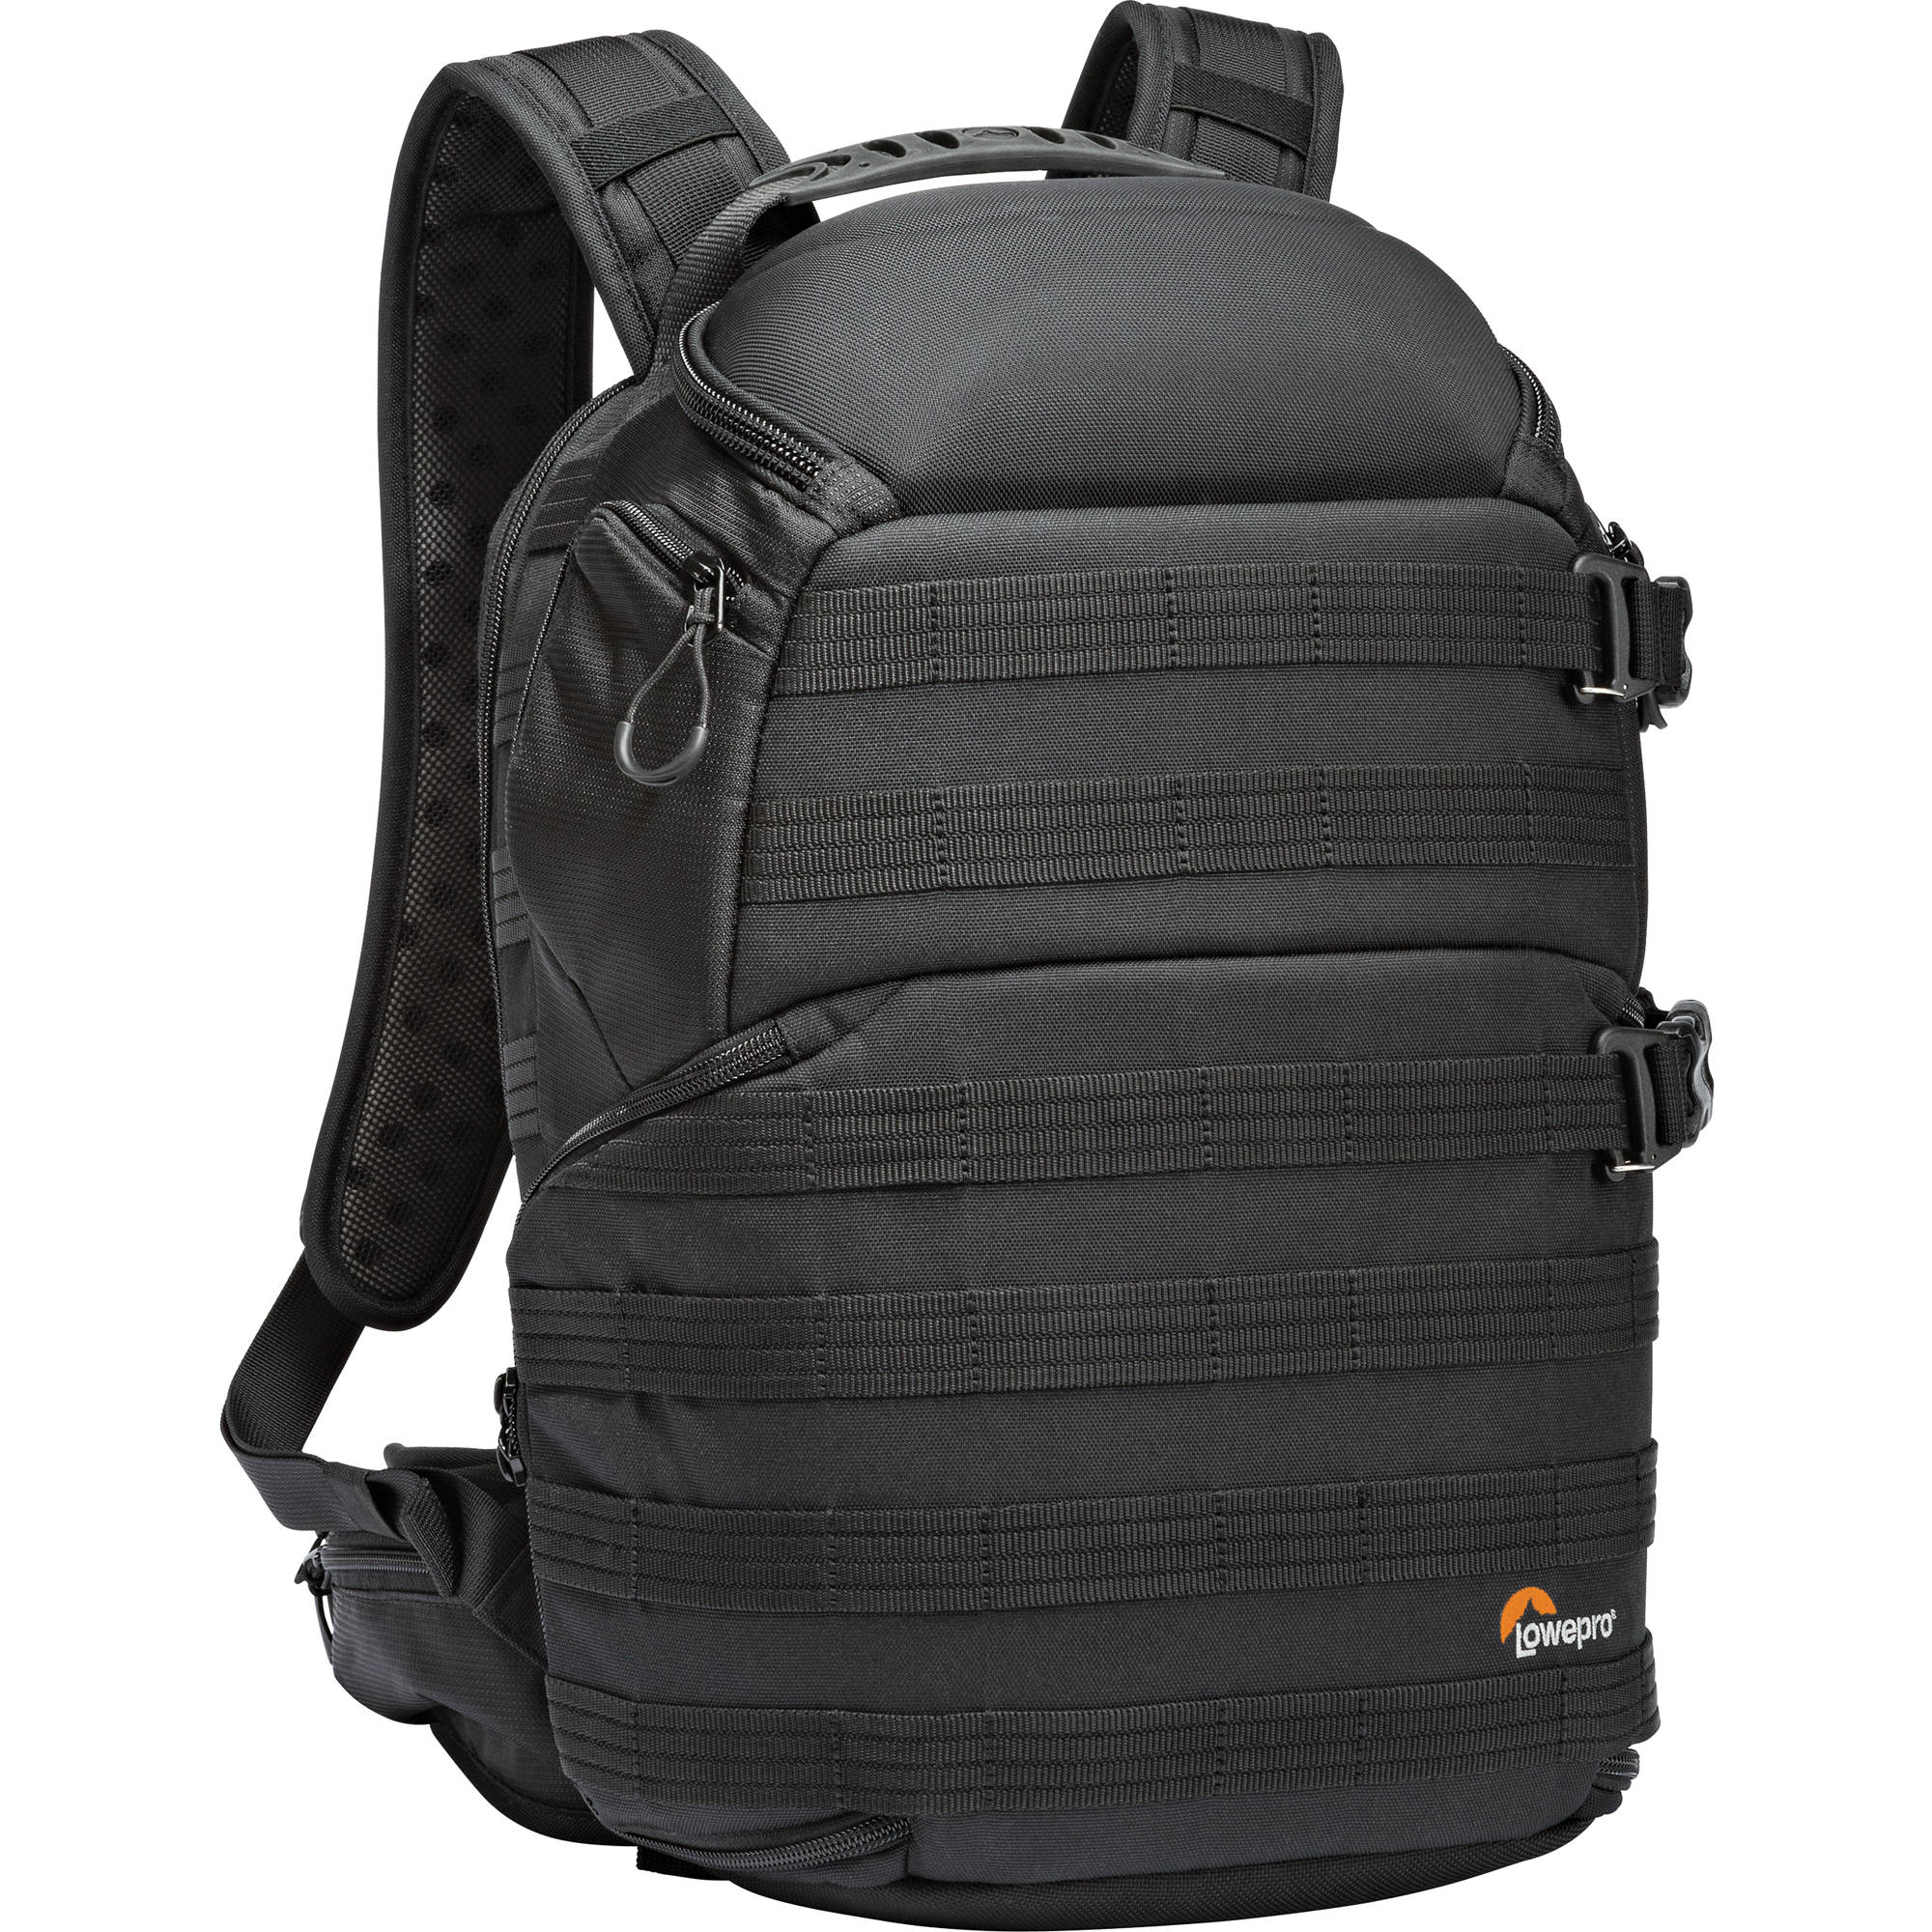 7f4157c83e Lowepro ProTactic 350 AW Camera and Laptop Backpack LP36771 B H